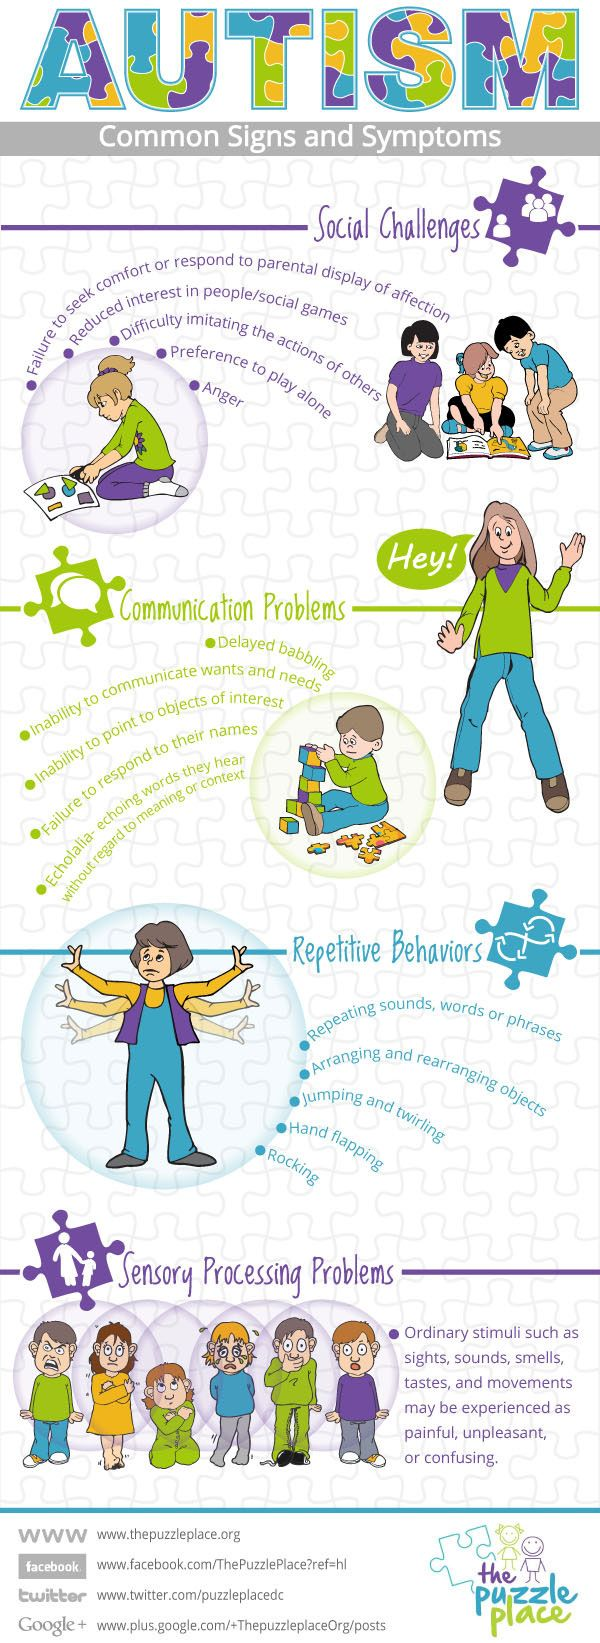 Autism Signs and Symptoms Infographic